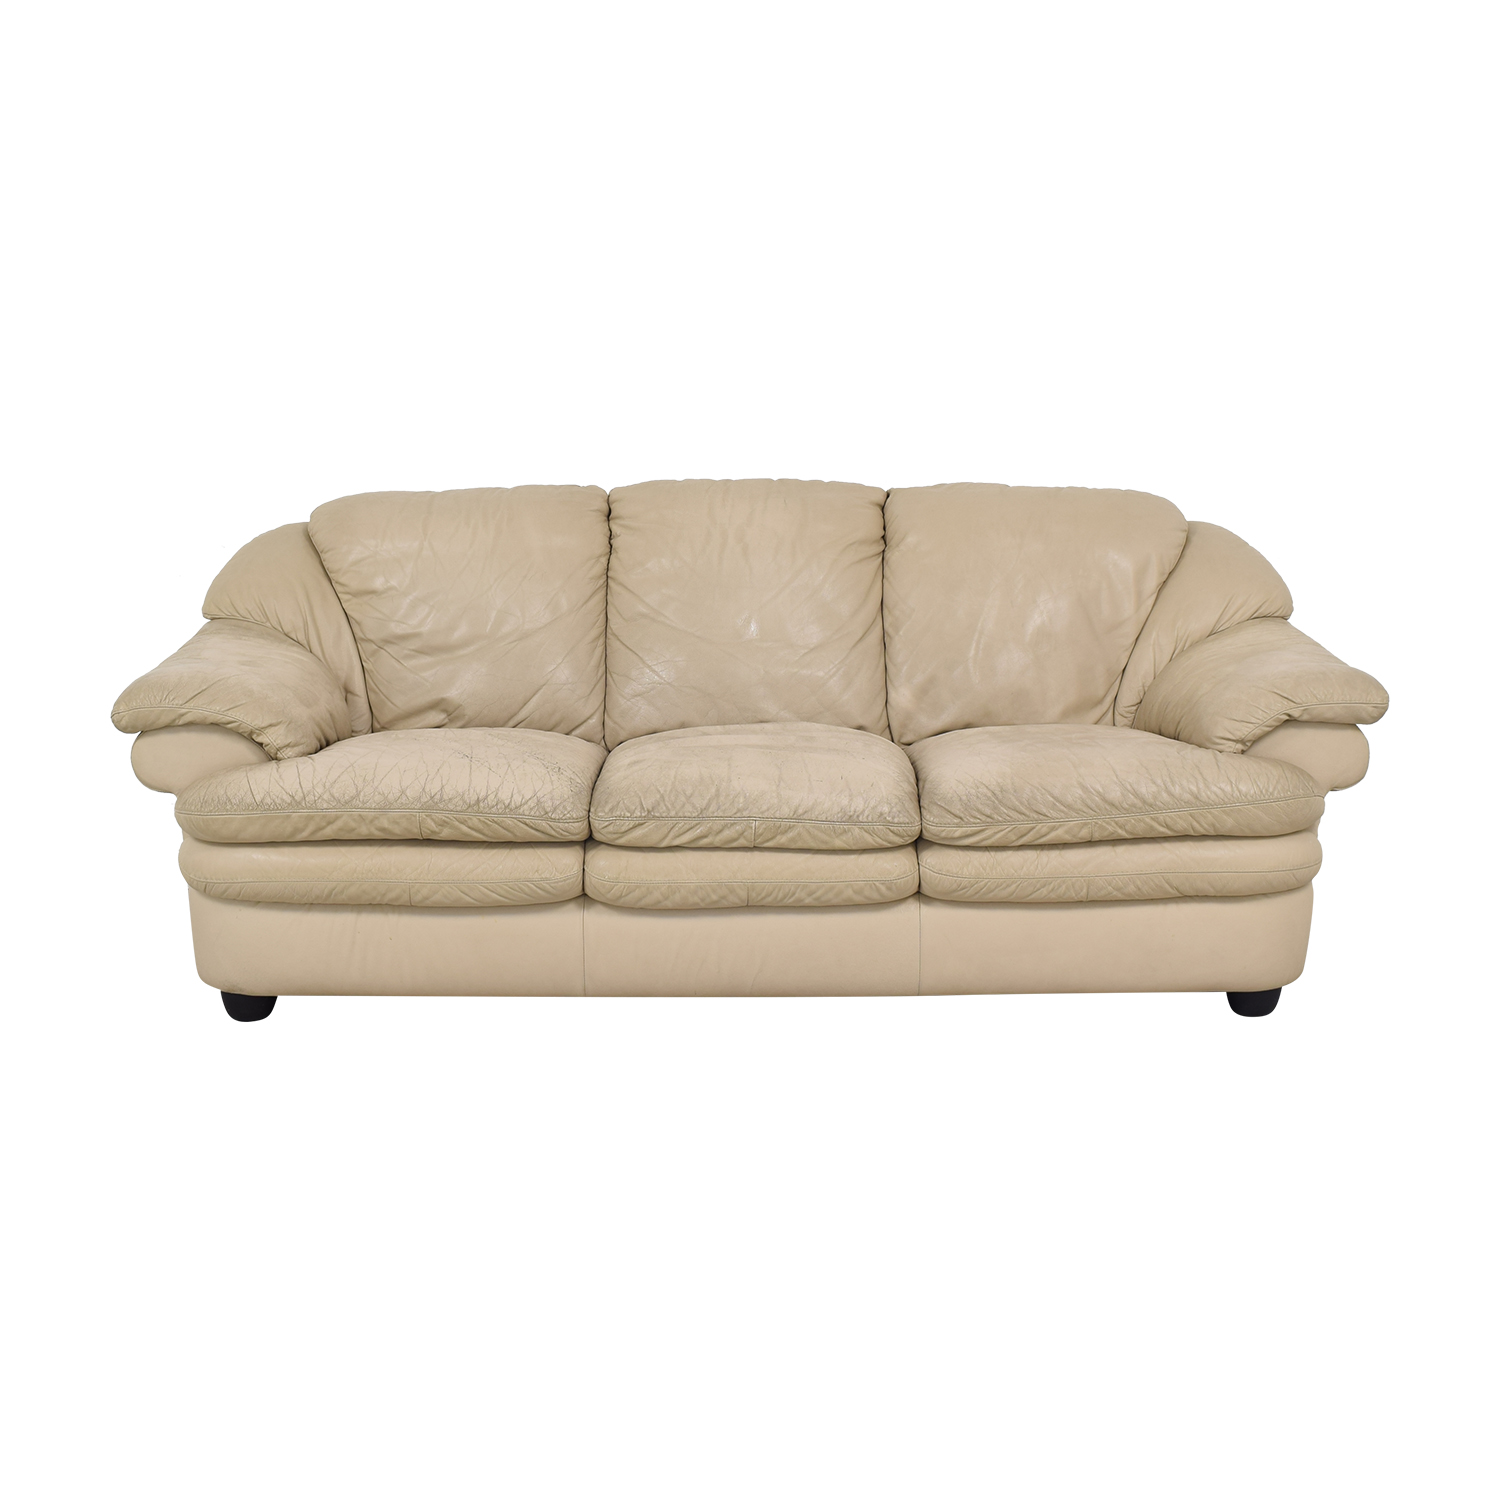 Natuzzi Natuzzi Three Seat Pillow Arm Sofa on sale